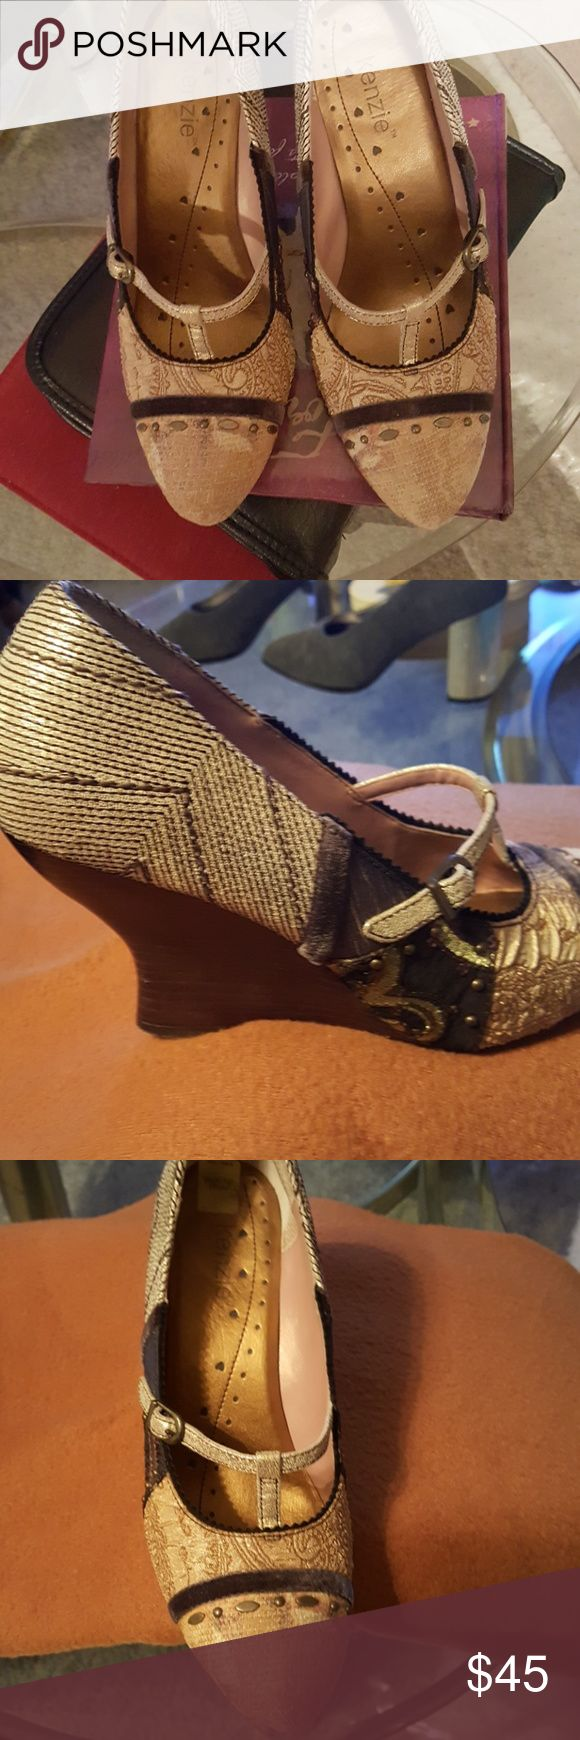 Shoes Super stylish ladies shoes with wedge wooden polished heel. Excellent condition. Worn twice. No Nick's, or scratches. Fabric brocade, brass stones, velvet strap across top, brass buckle. Very nice. I've been holding on to these shoes because I love them. Somehow my feel enlarged half size. I wear 9.5 now instead of 9. I've got 70 more pair shoes I have to sell. 😣. You will love these shoes. kenzie Shoes Heels